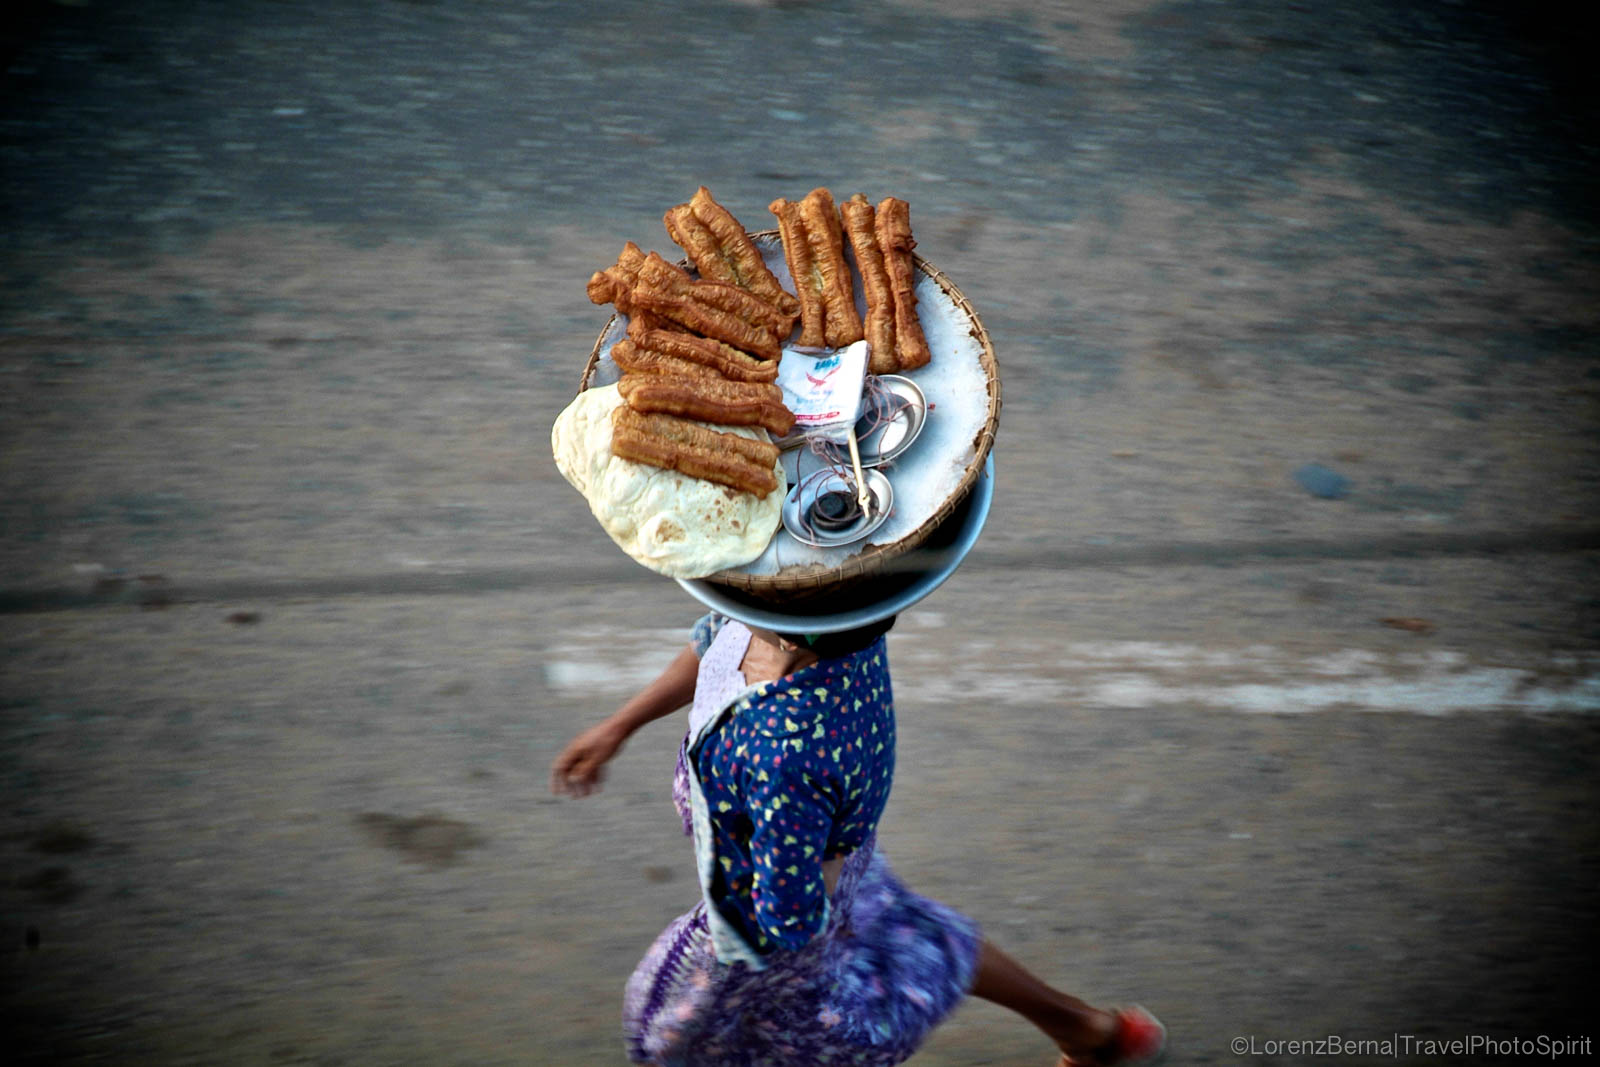 Seller carrying her food tray on her head in Yangon, Myanmar.